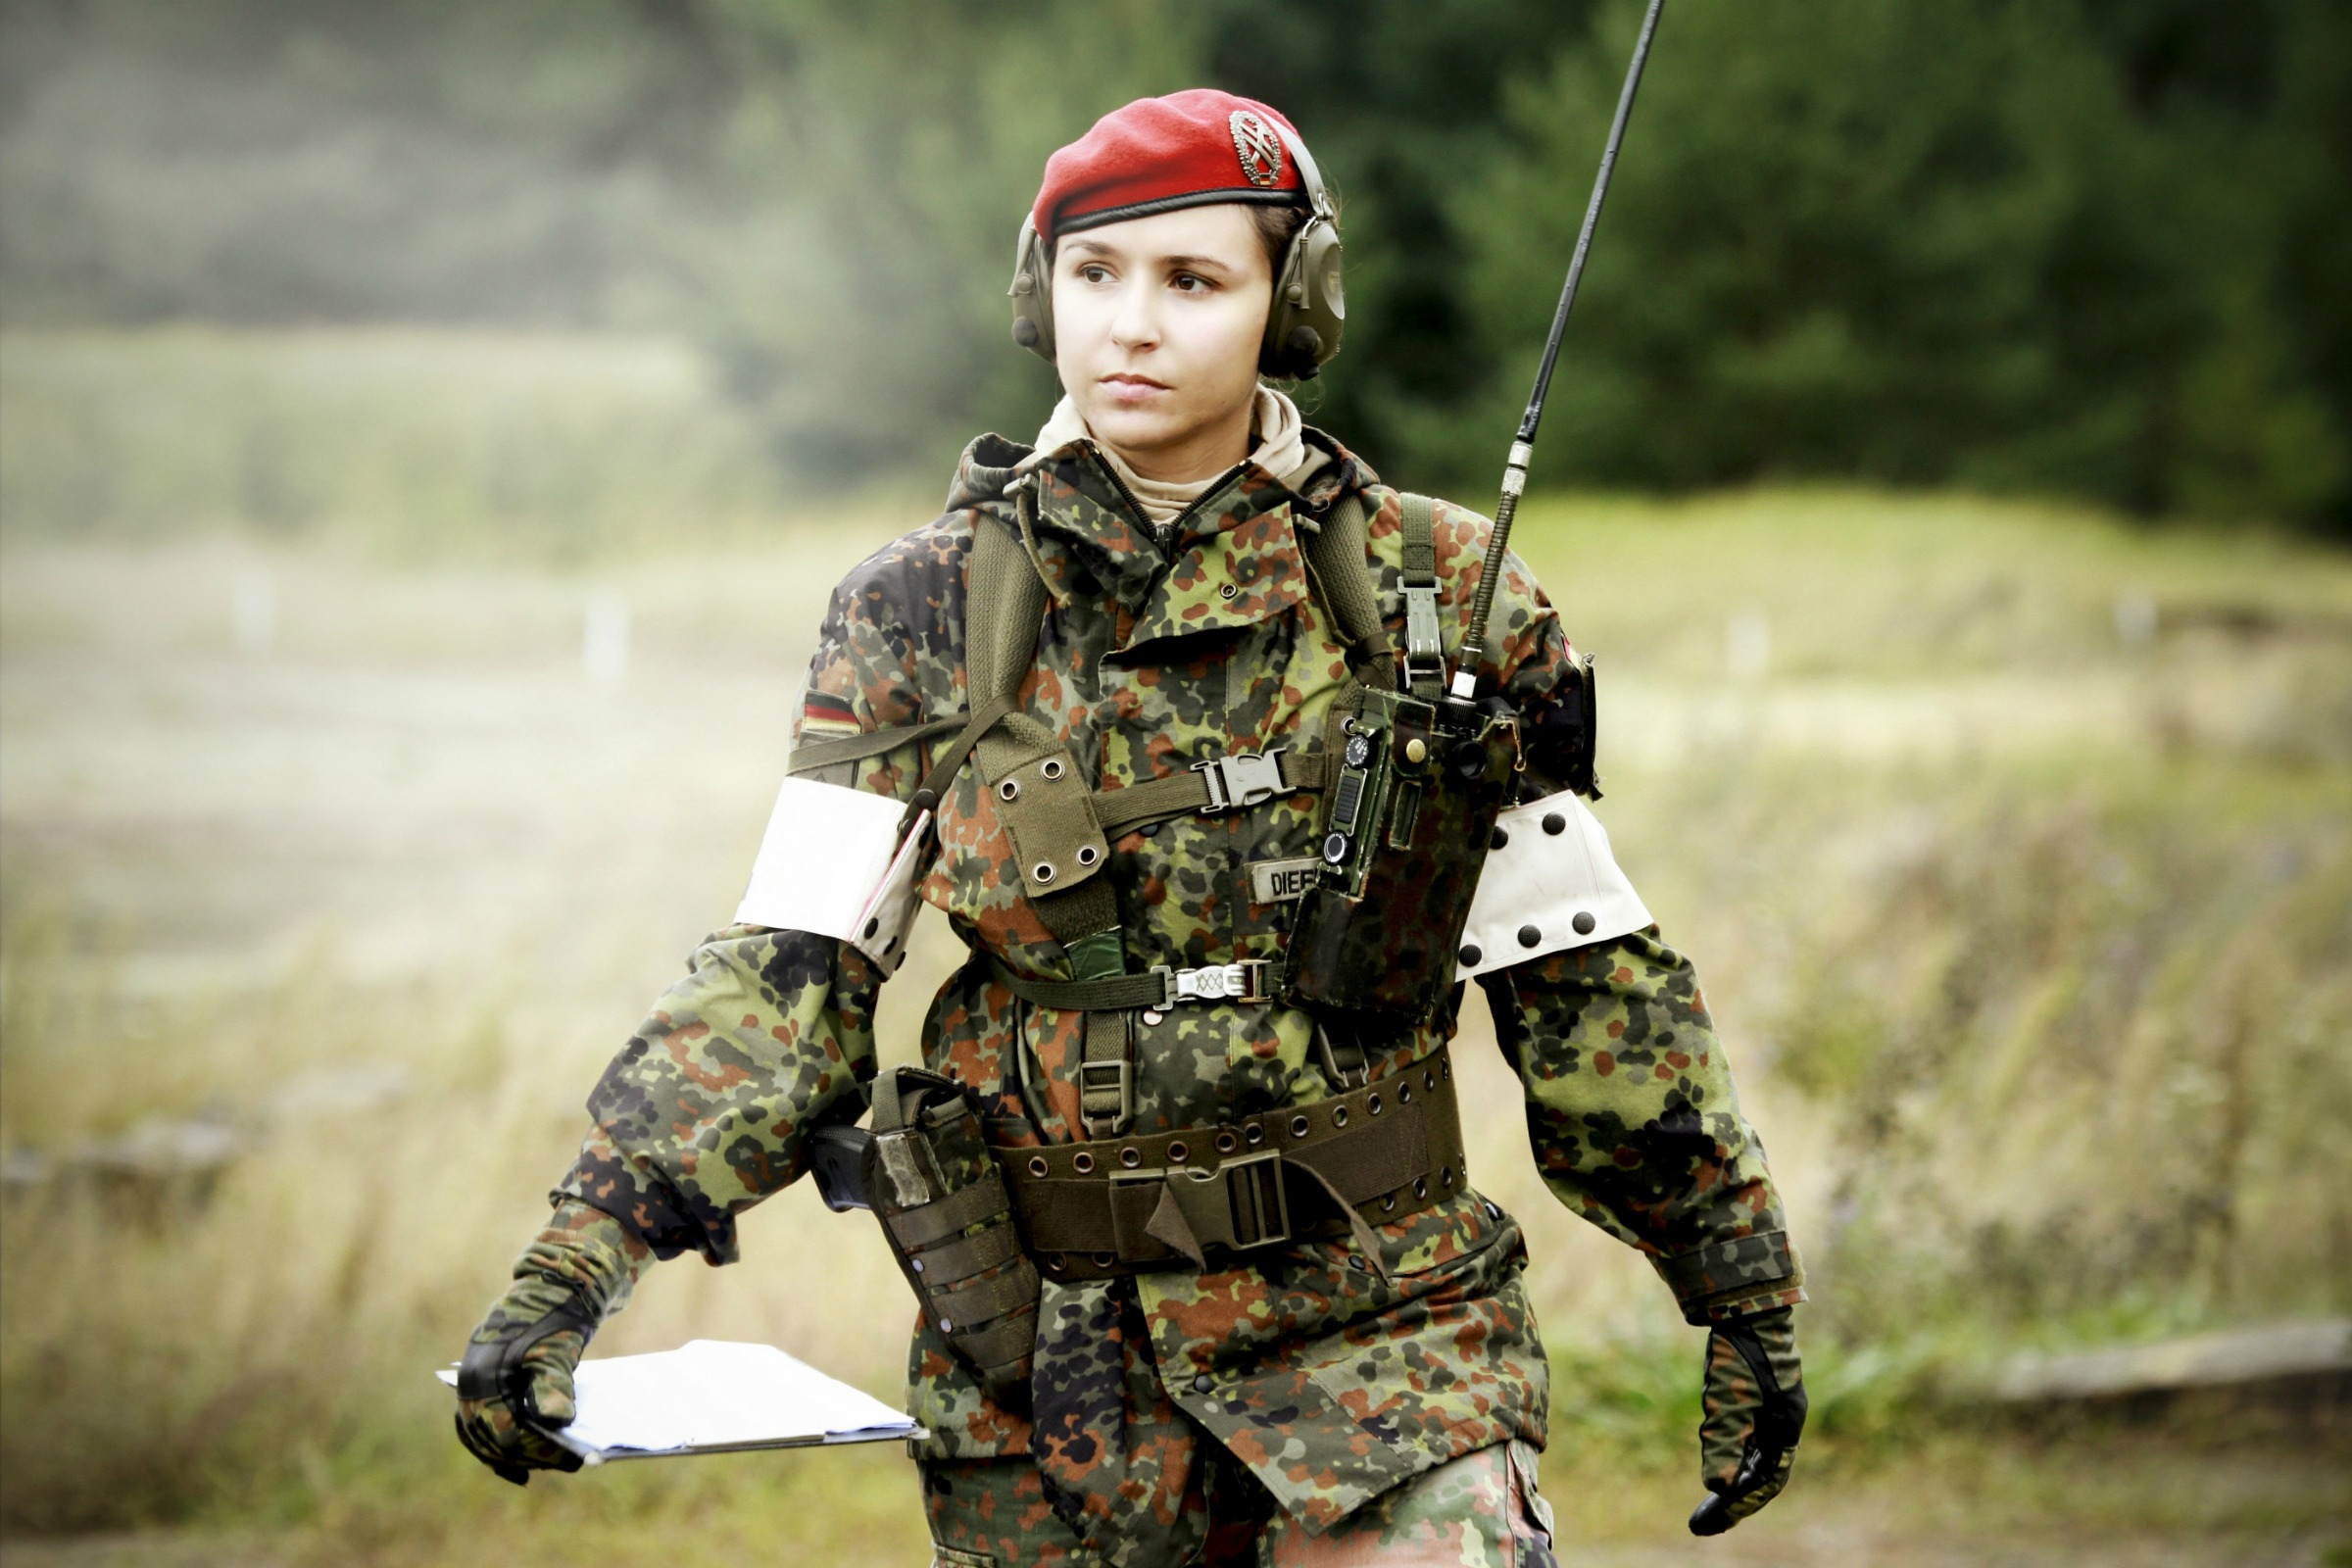 Free nude military women photos